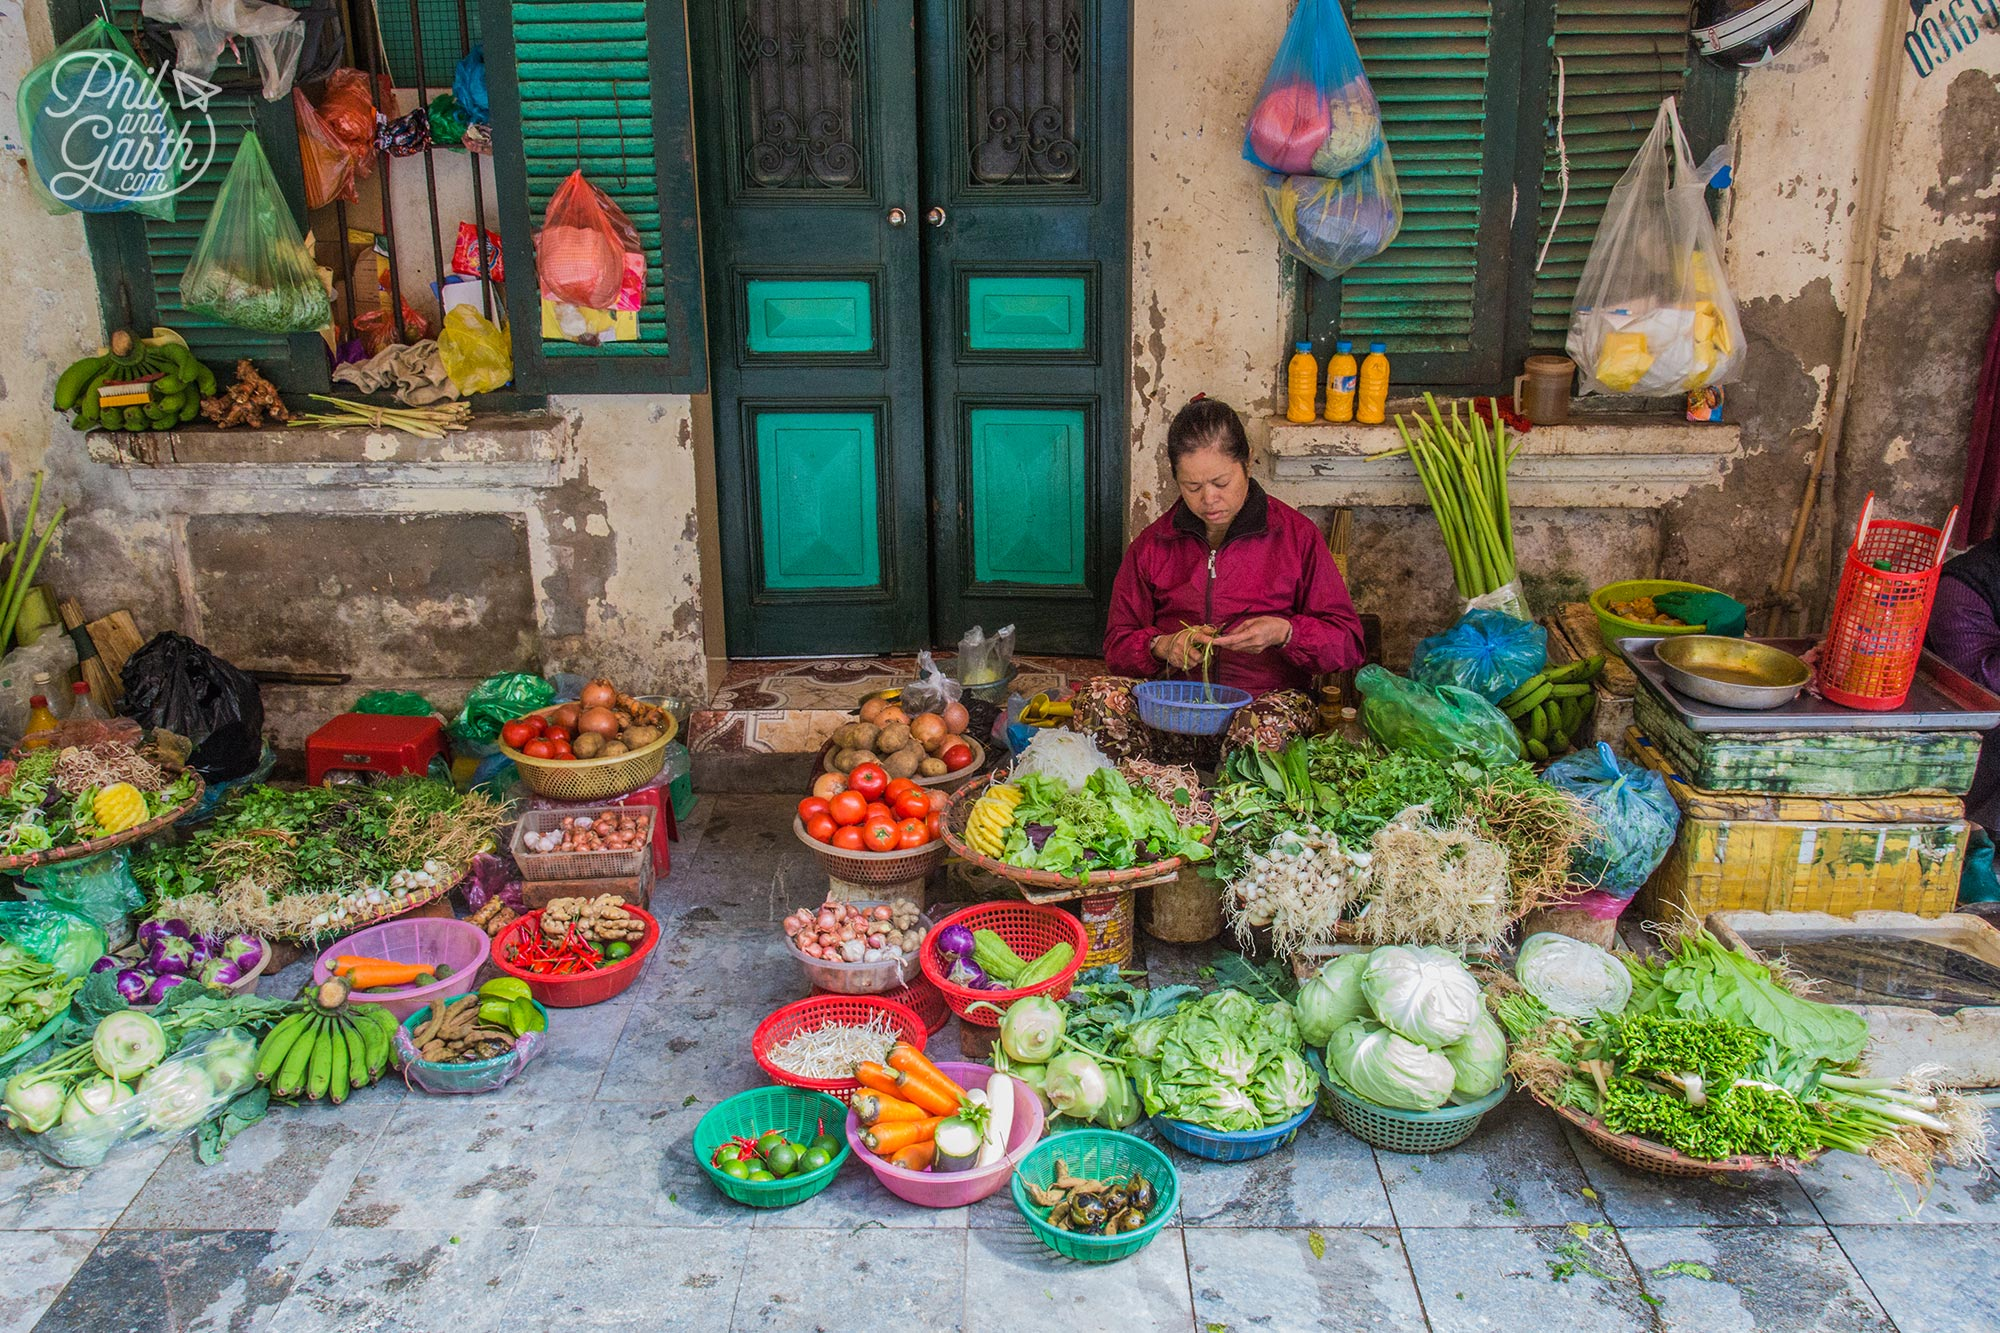 A typical street scene in the Old Quarter of Hanoi